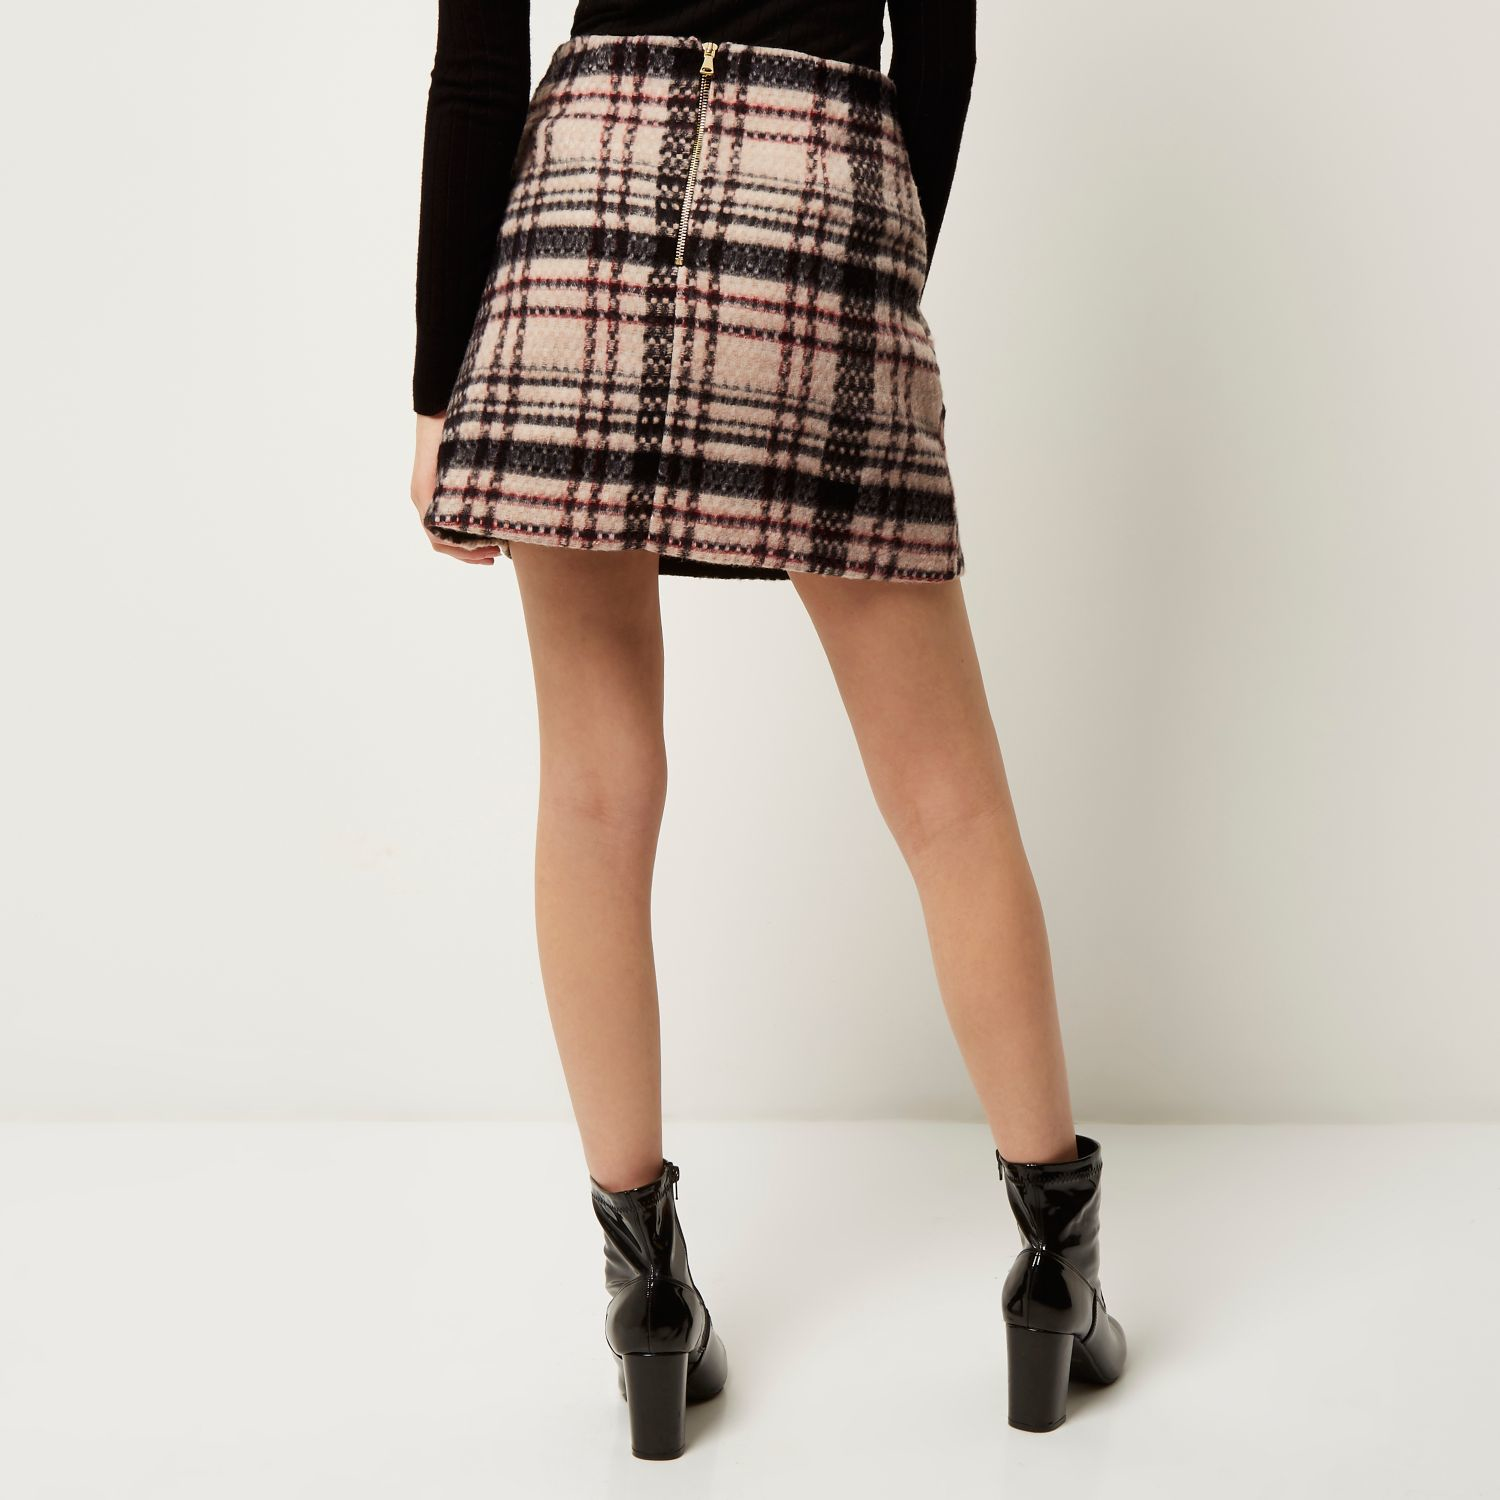 River island Pink Wool-blend Check Mini Skirt in Pink | Lyst